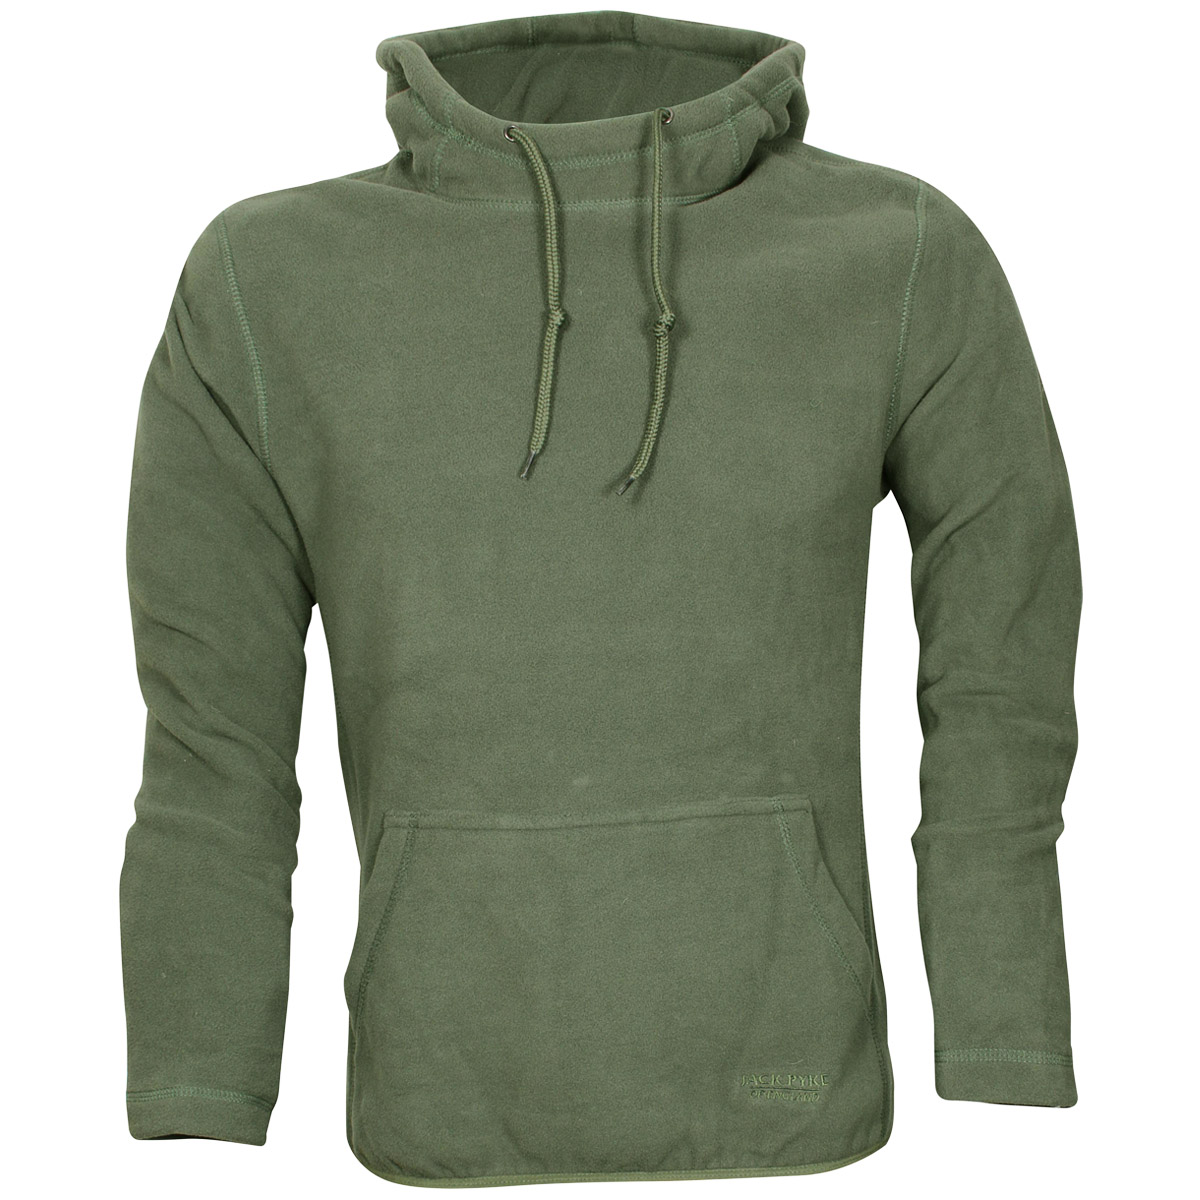 Details about Jack Pyke Fieldman Mens Fleece Hoodie Polar Jacket Hiking  Hunting Fishing Green e1d26ad0cfc6